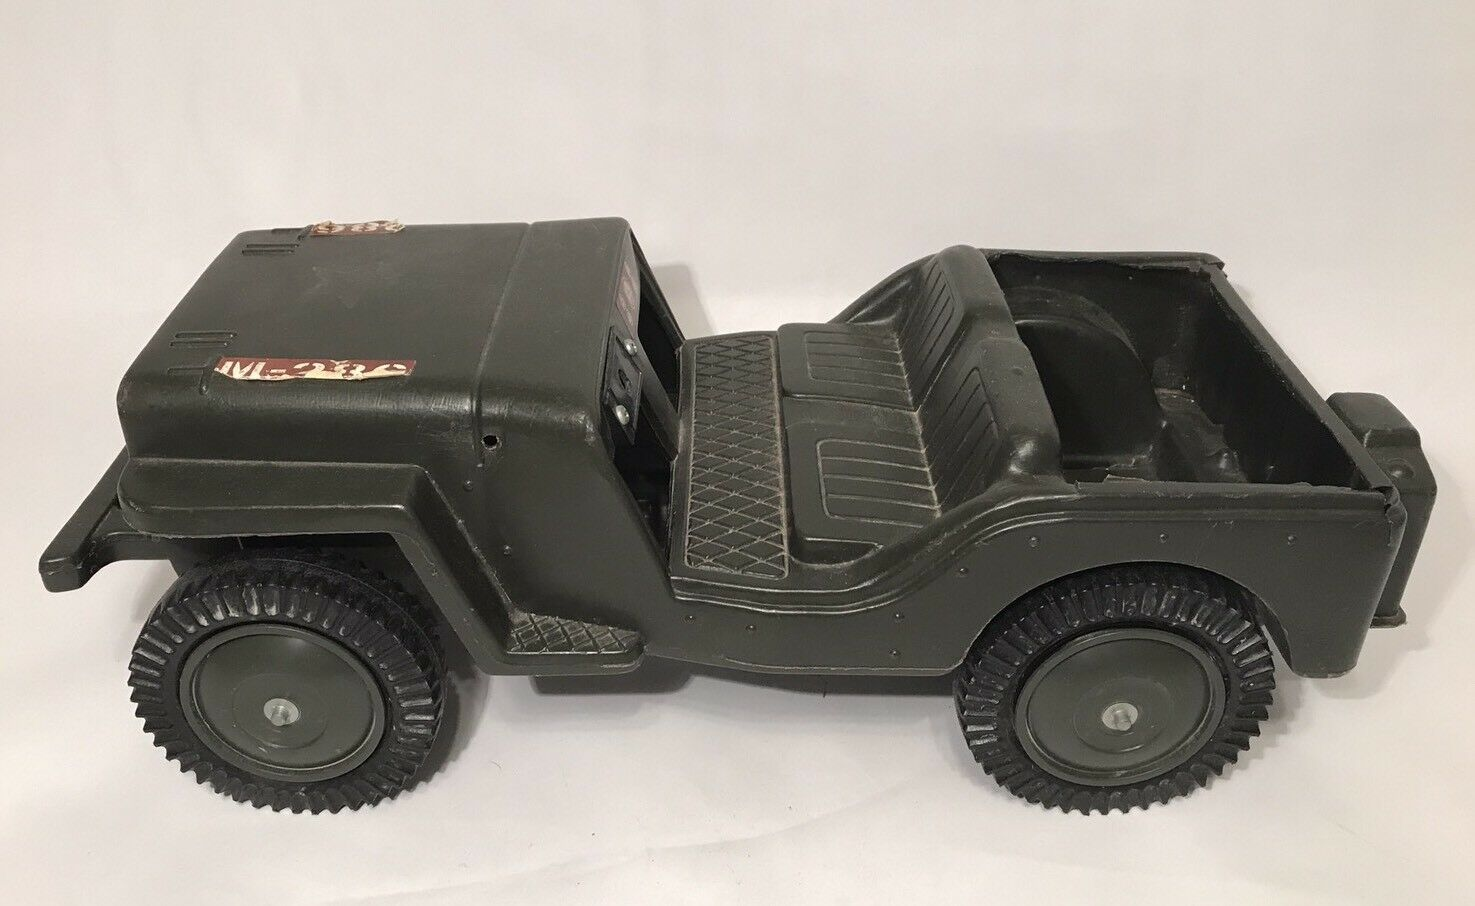 Vintage GI Joe Military Combat Jeep M-286 Plastic 20  Vehicle 1975 For Parts